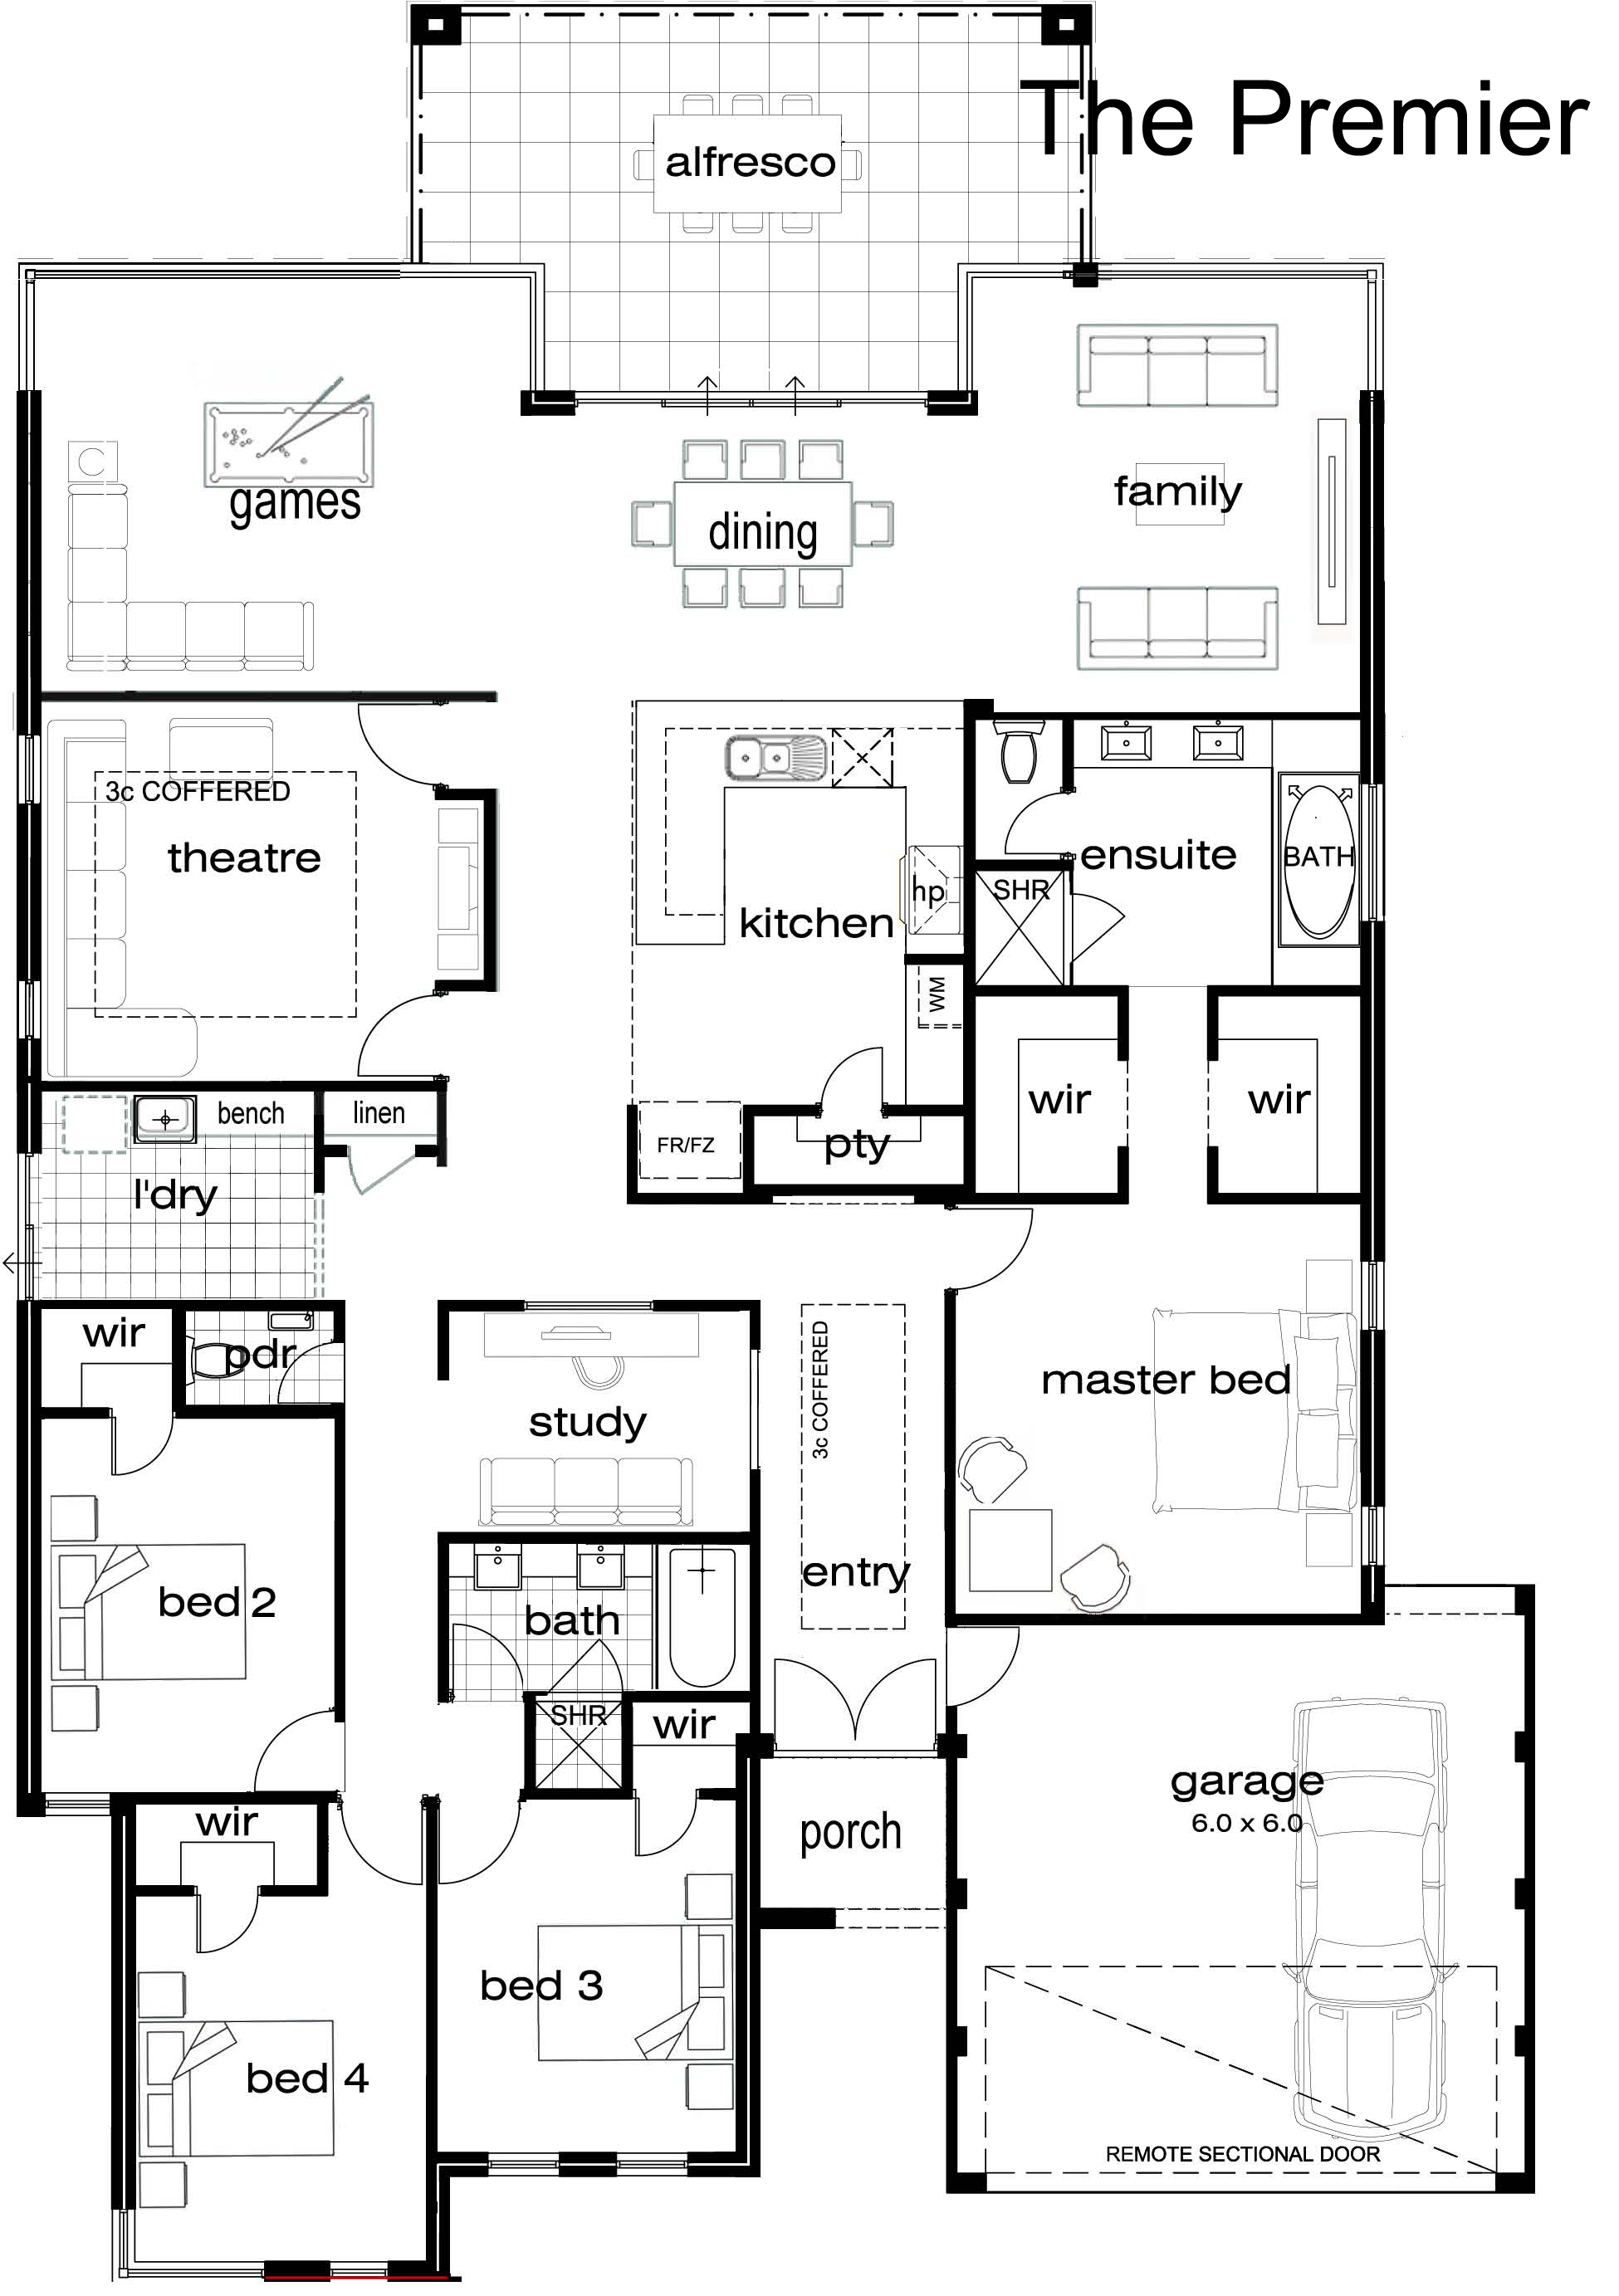 Single storey house plan google search houseplans - Single story 4 bedroom modern house plans ...